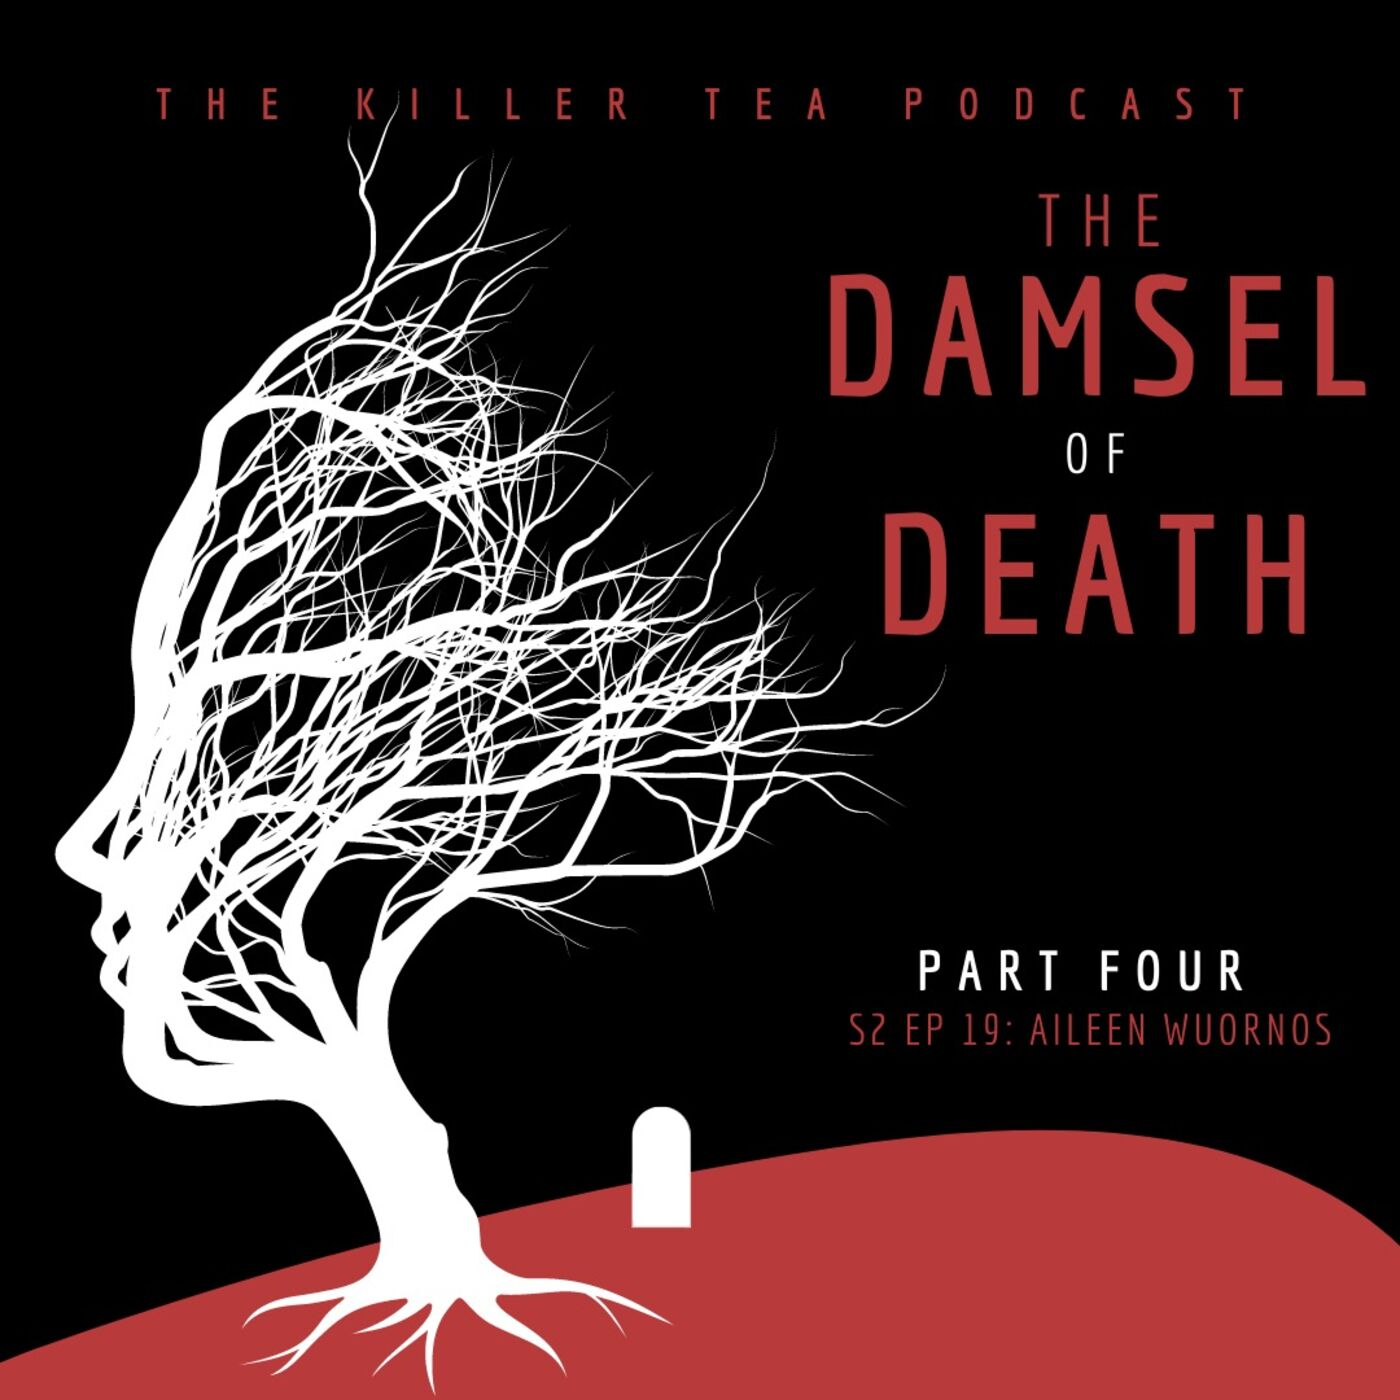 S2 Ep. 19 AILEEN WUORNOS    The Damsel of Death    Part 4